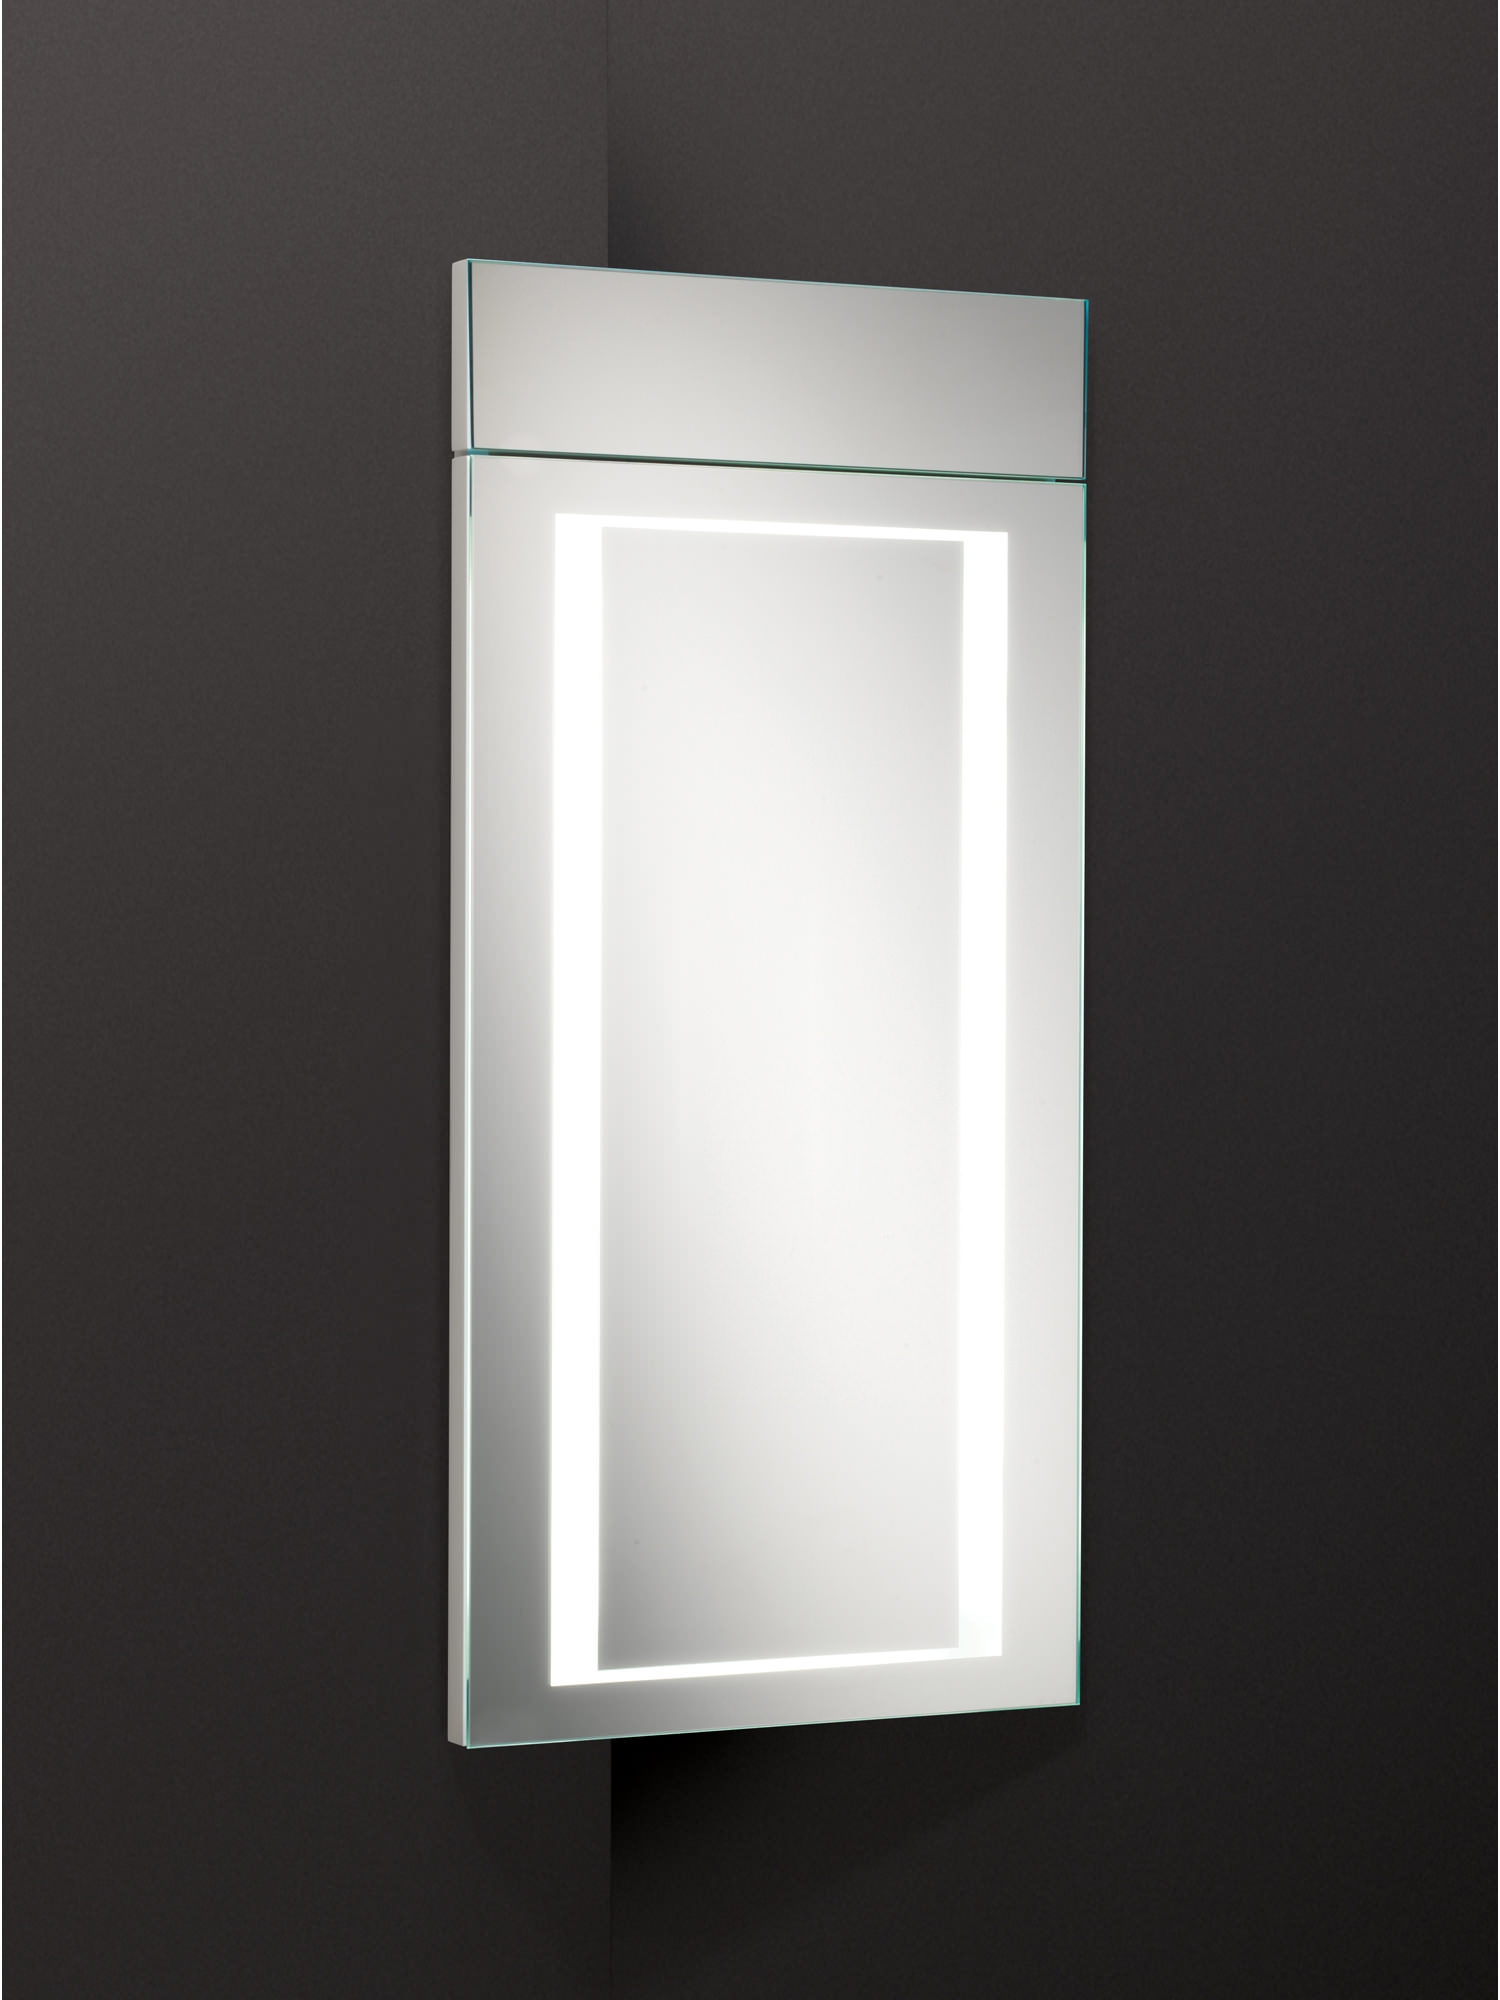 Illuminated Corner Bathroom Mirror Cabinet